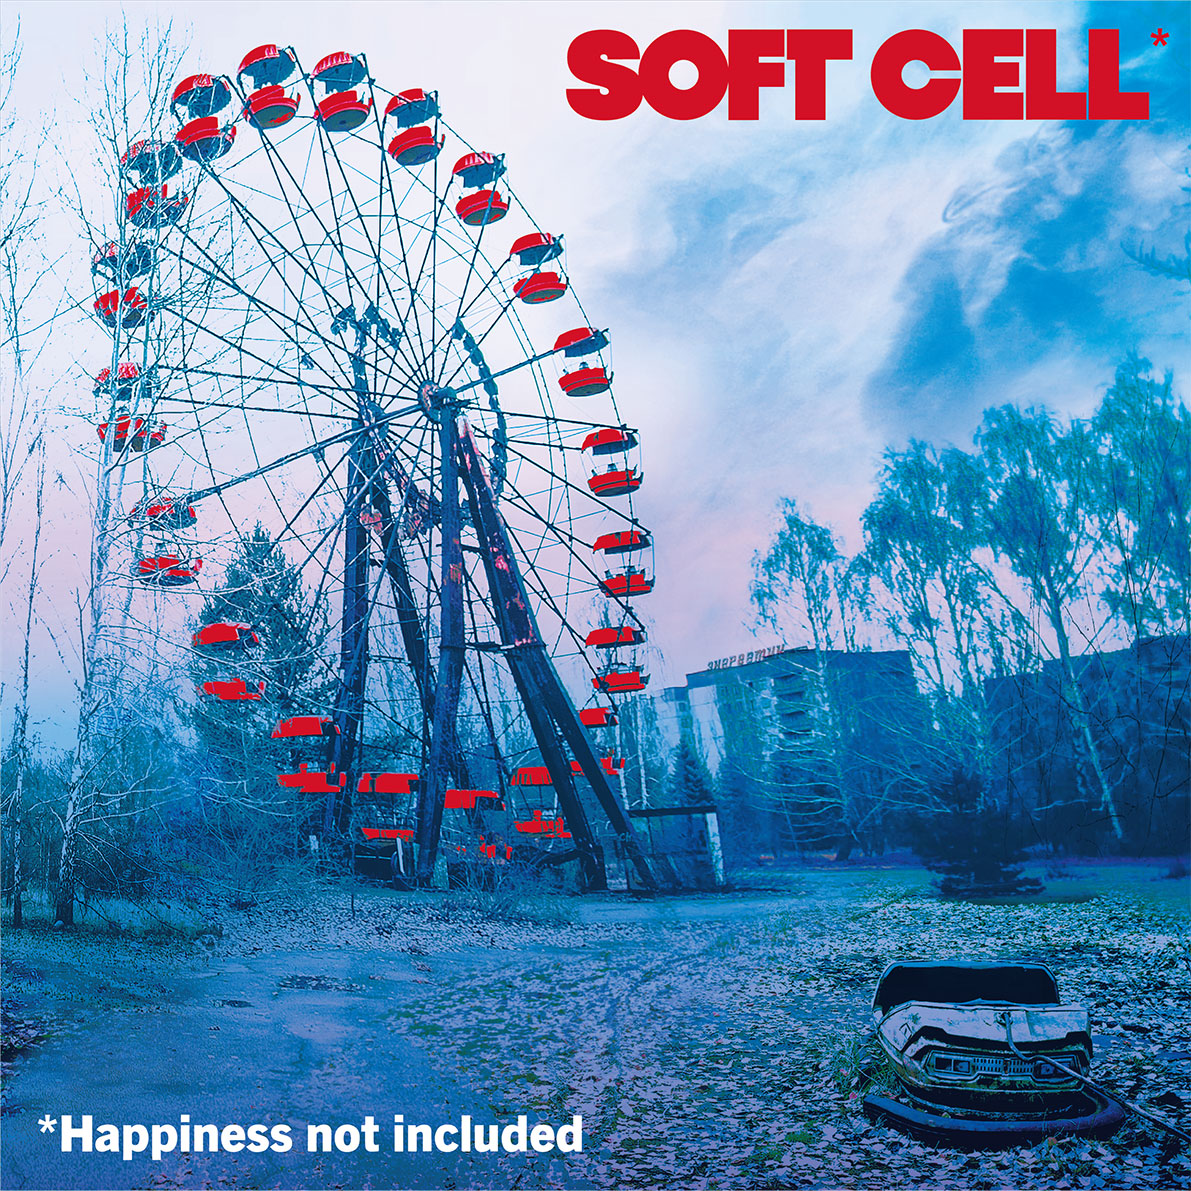 Soft Cell To Release First New Album In 20 Years